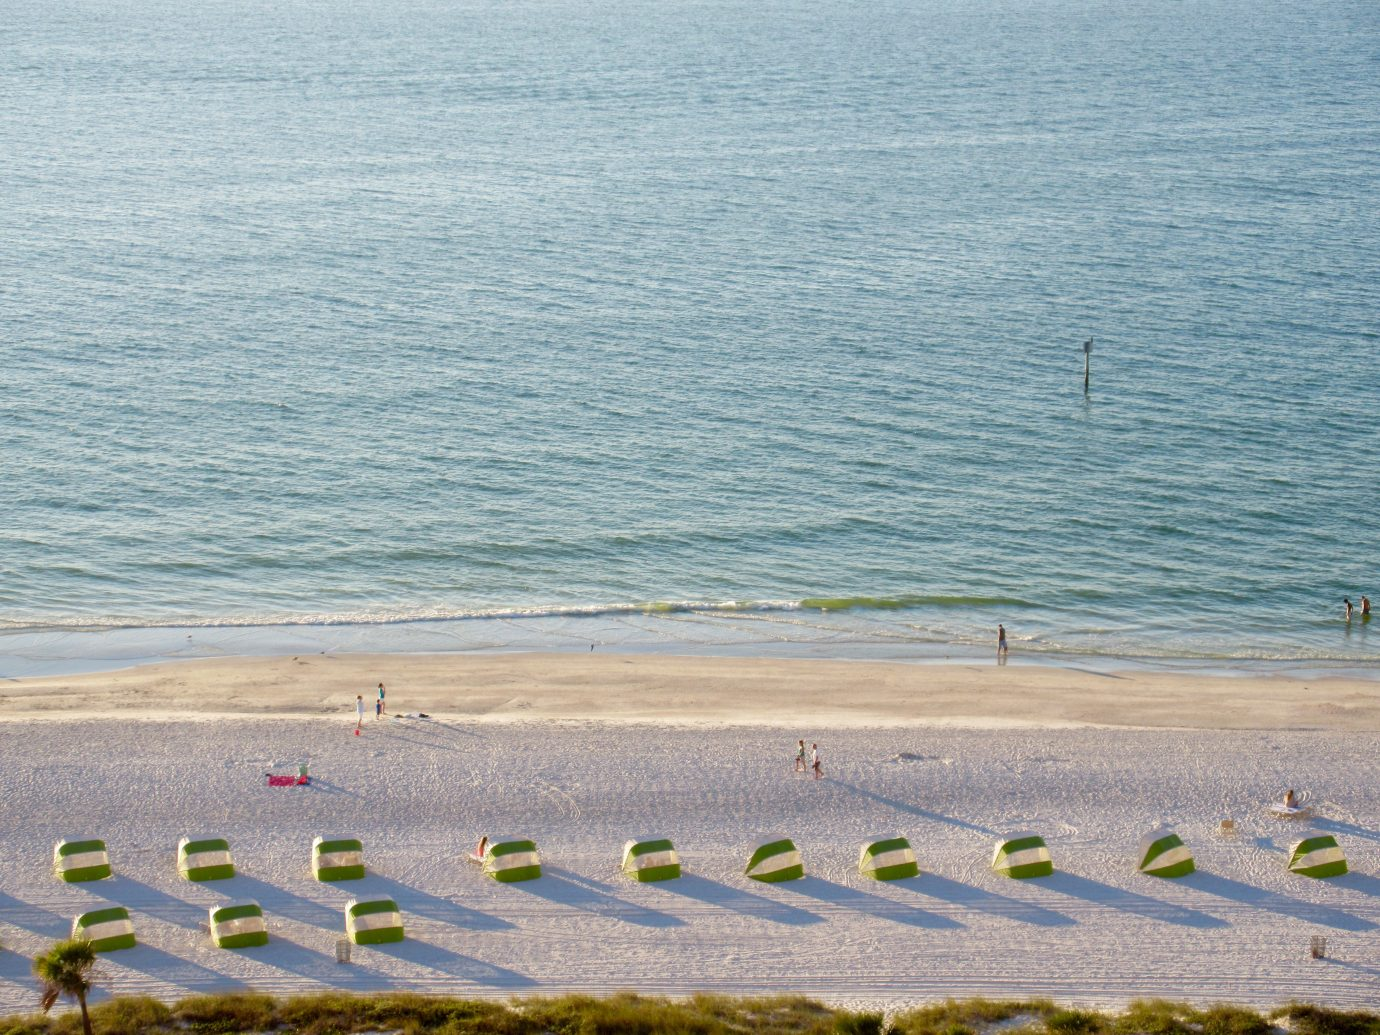 Late afternoon, Clearwater Beach, Florida